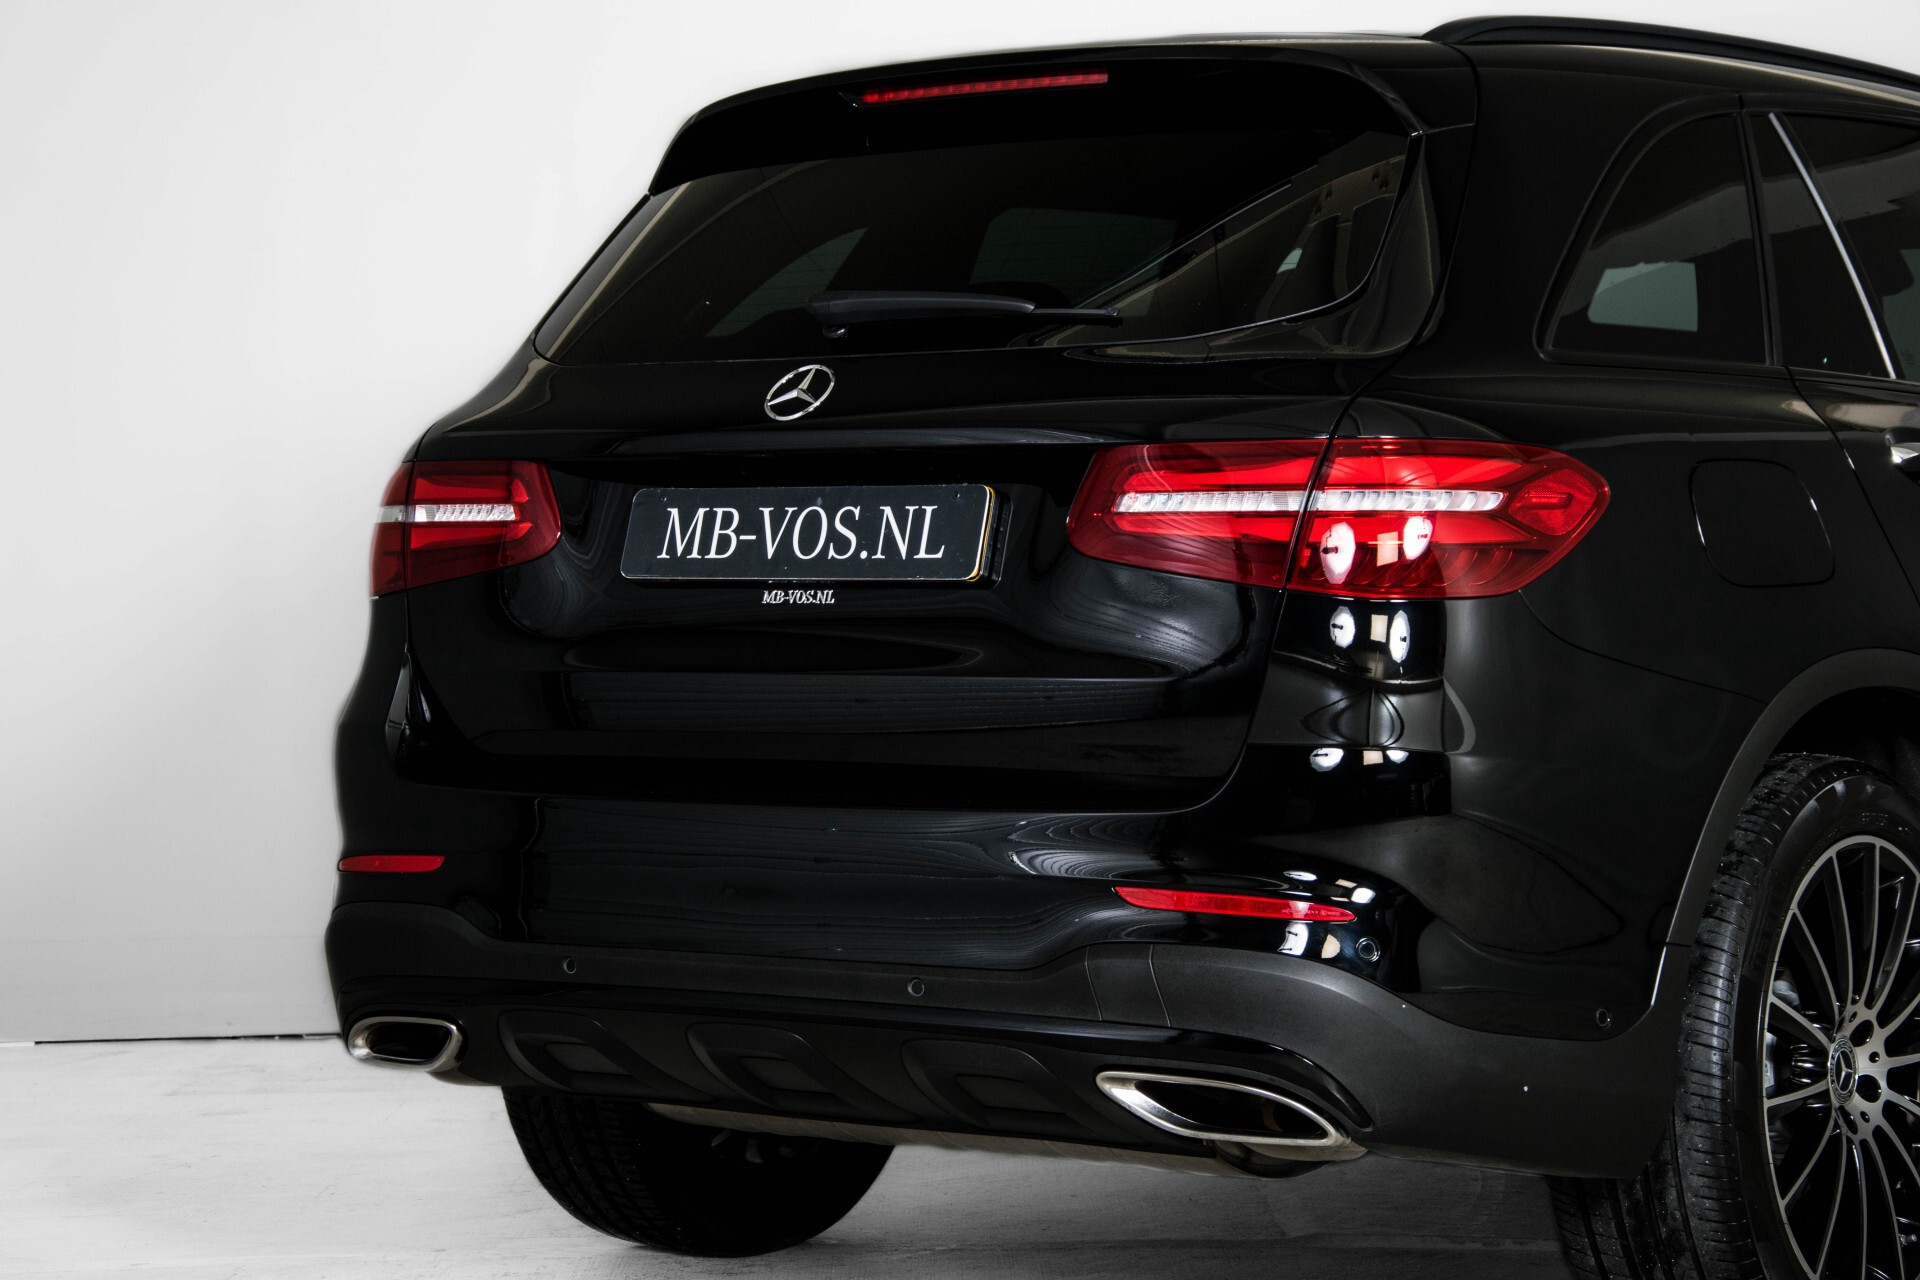 Mercedes-Benz GLC-Klasse 300 4-M AMG Panorama Distronic/Keyless/Burmester/Memory/Night Aut9 Foto 39